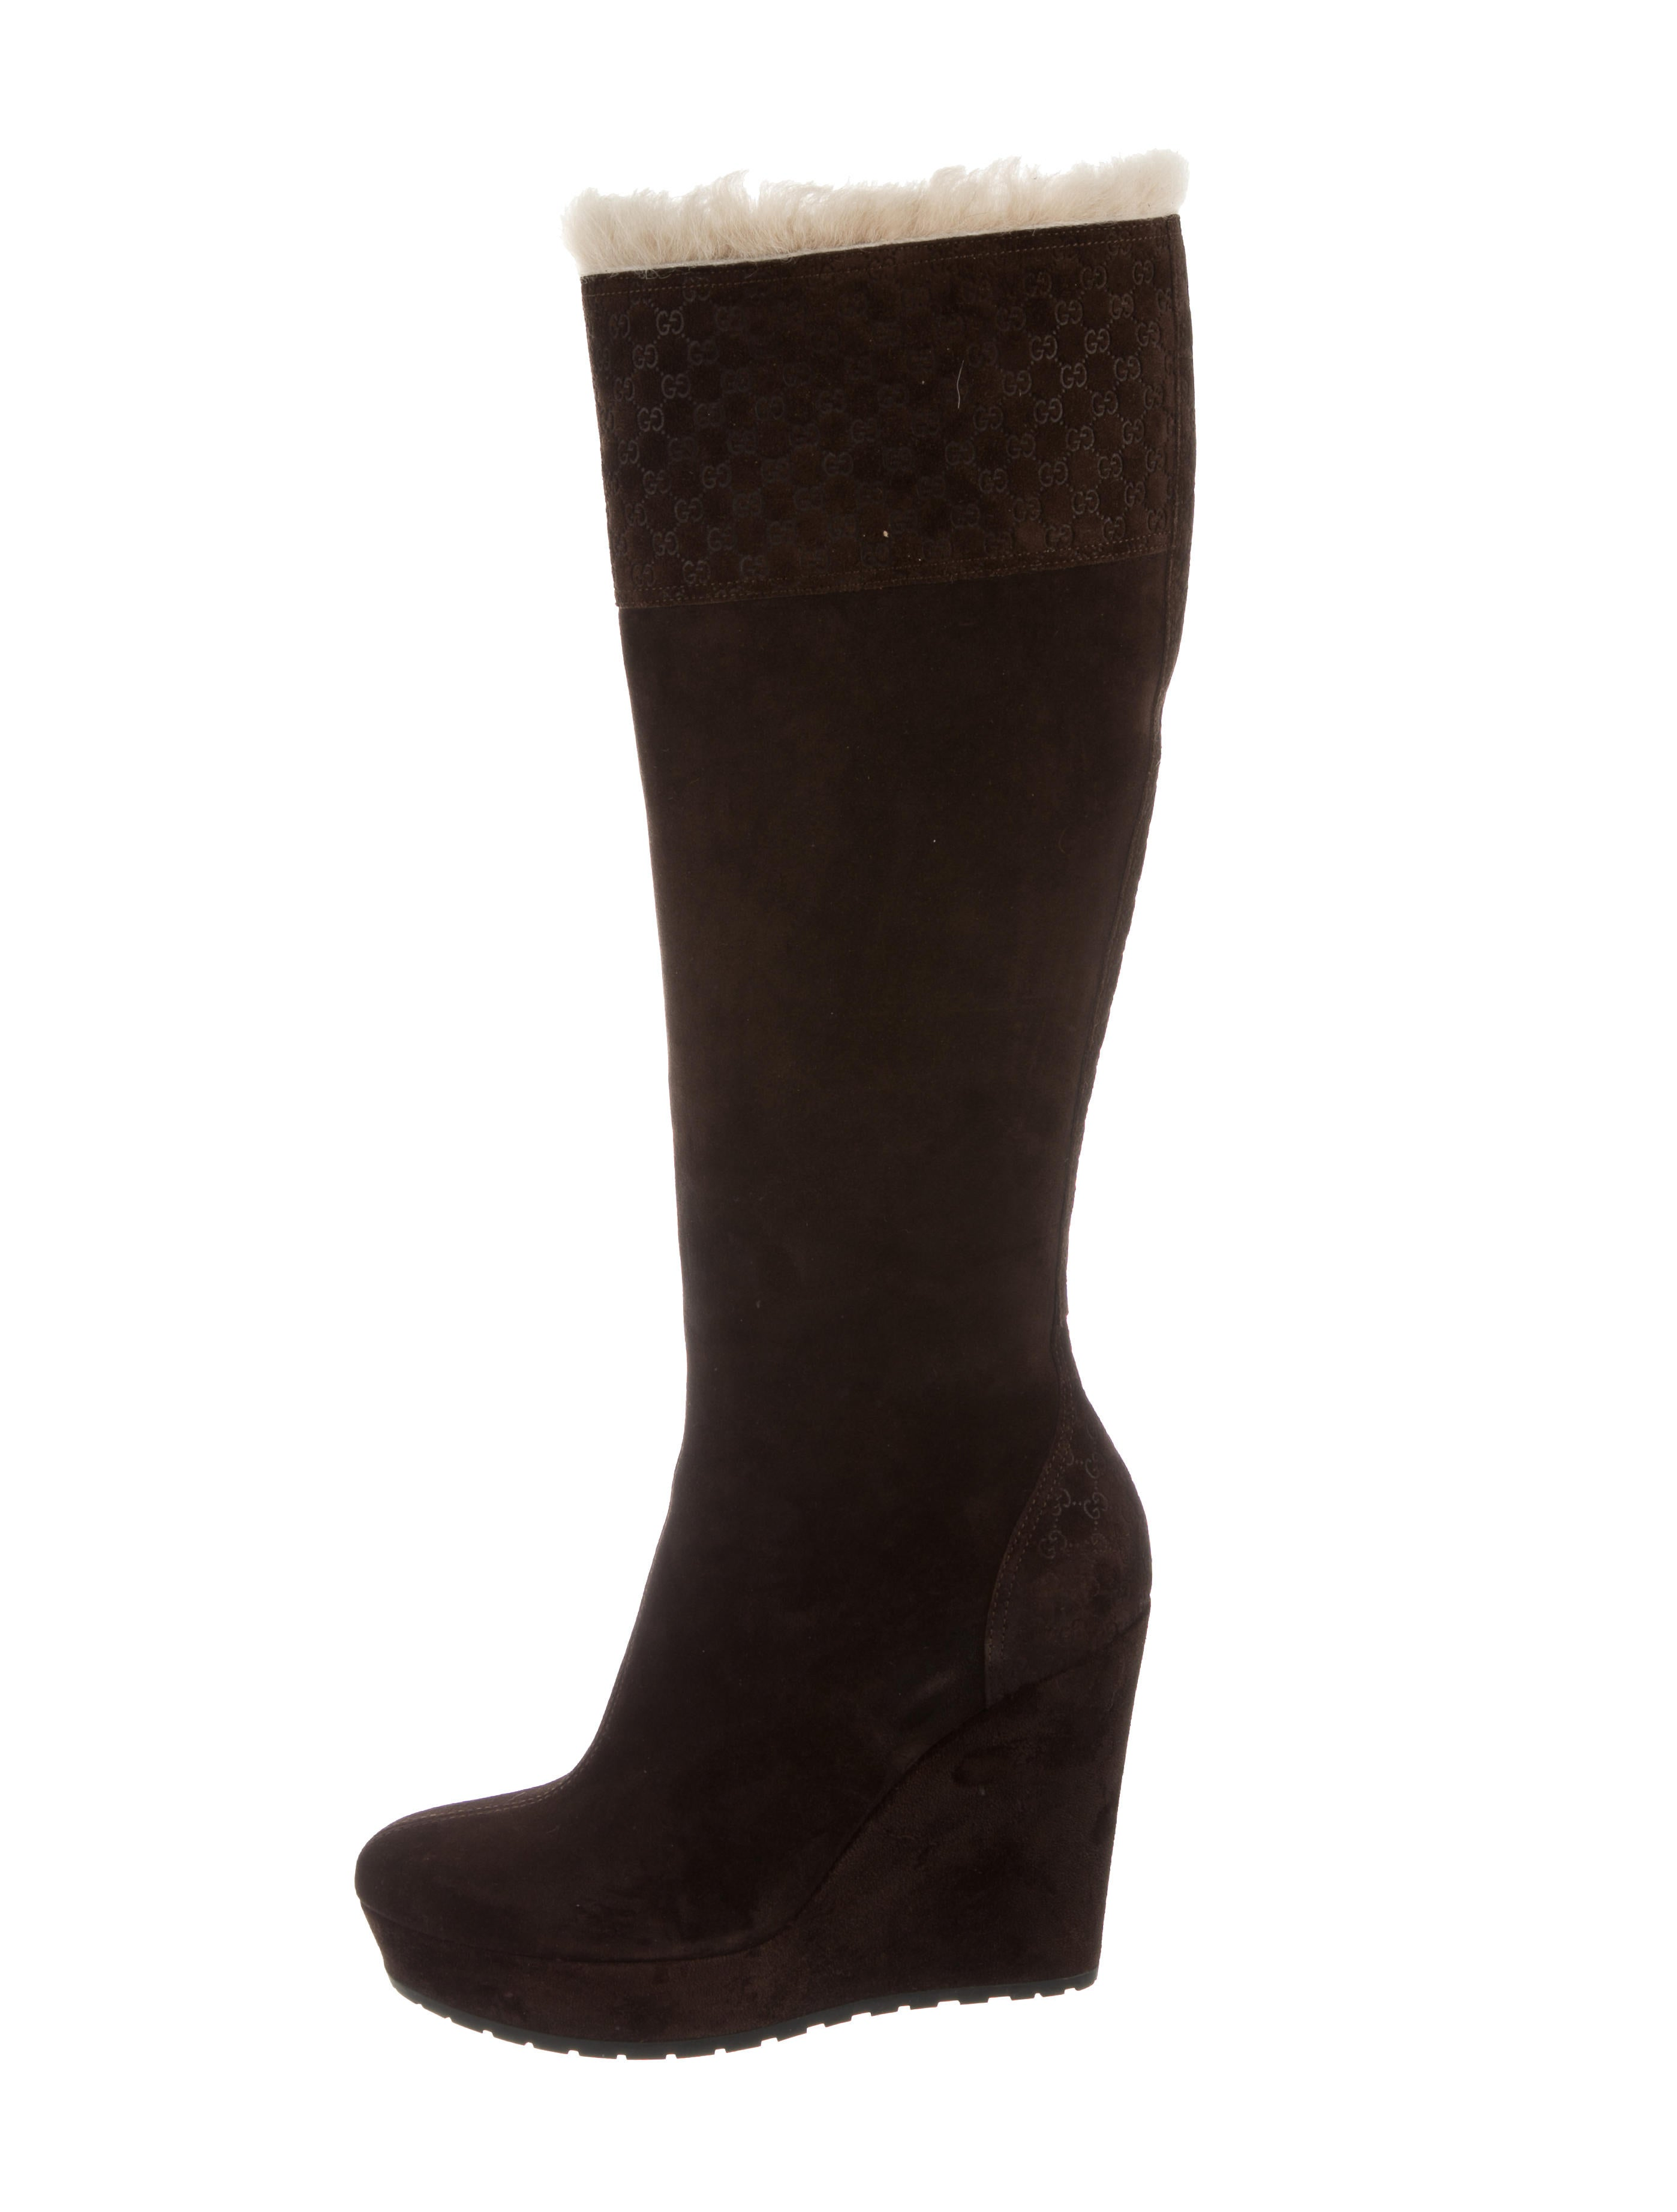 gucci shearling wedge boots shoes guc138036 the realreal